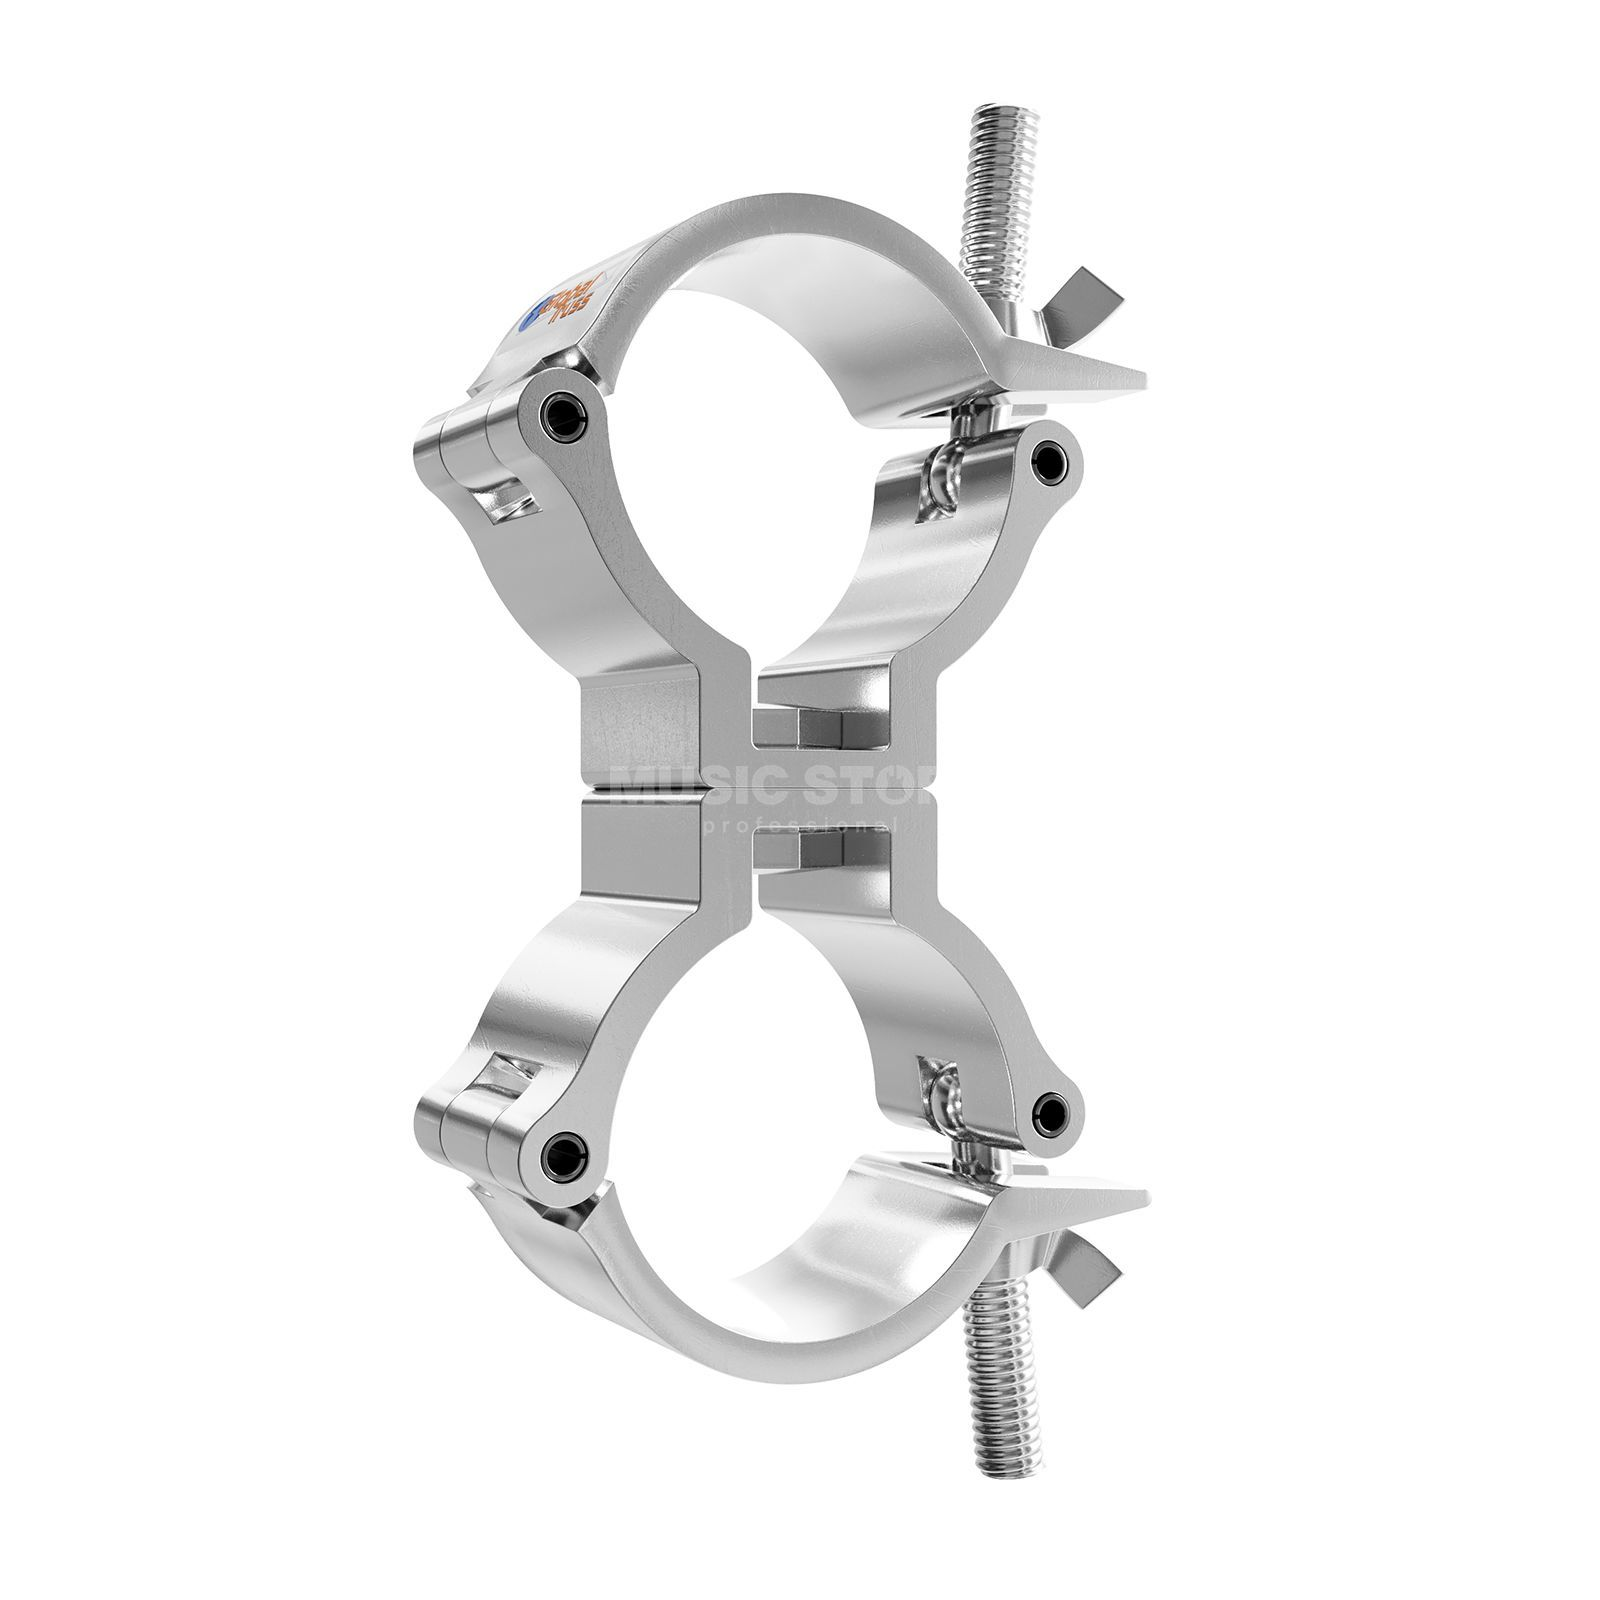 Global Truss Double Clamp - small with joint - 50mm Produktbillede